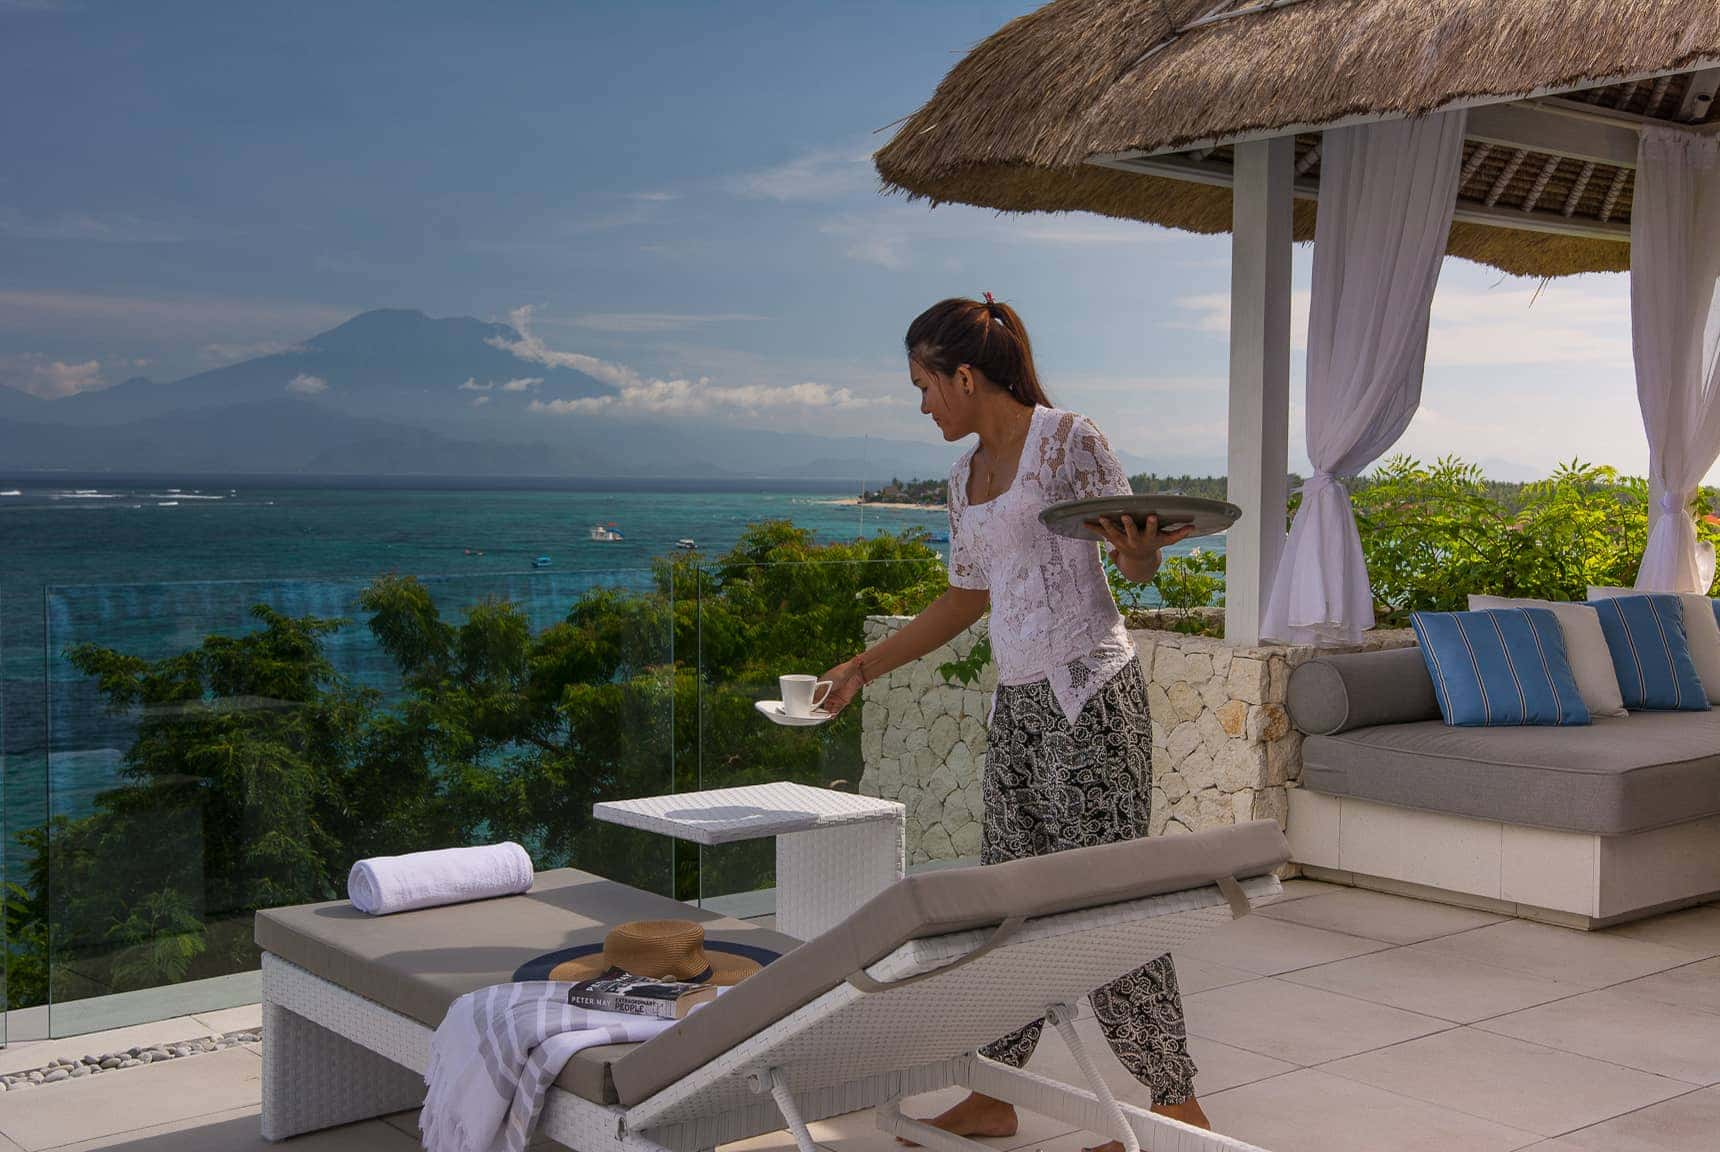 Professional lifestyle photography by LuxViz in Bali Indonesia